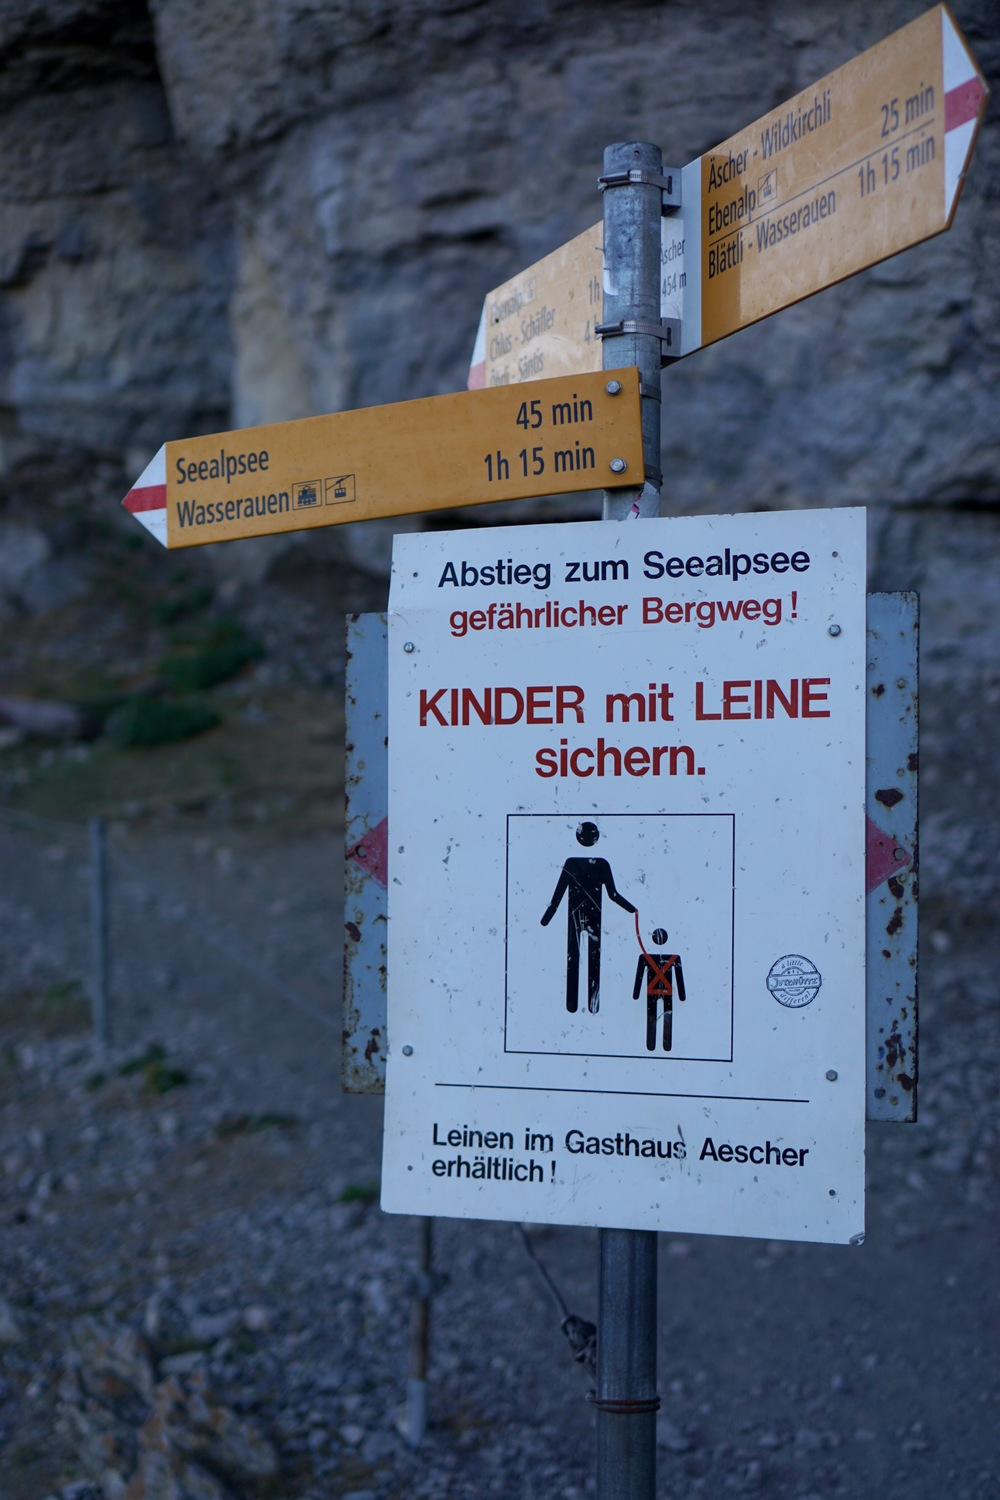 Lets be clear. The Swiss are advocating child leashes. NEVER OKAY